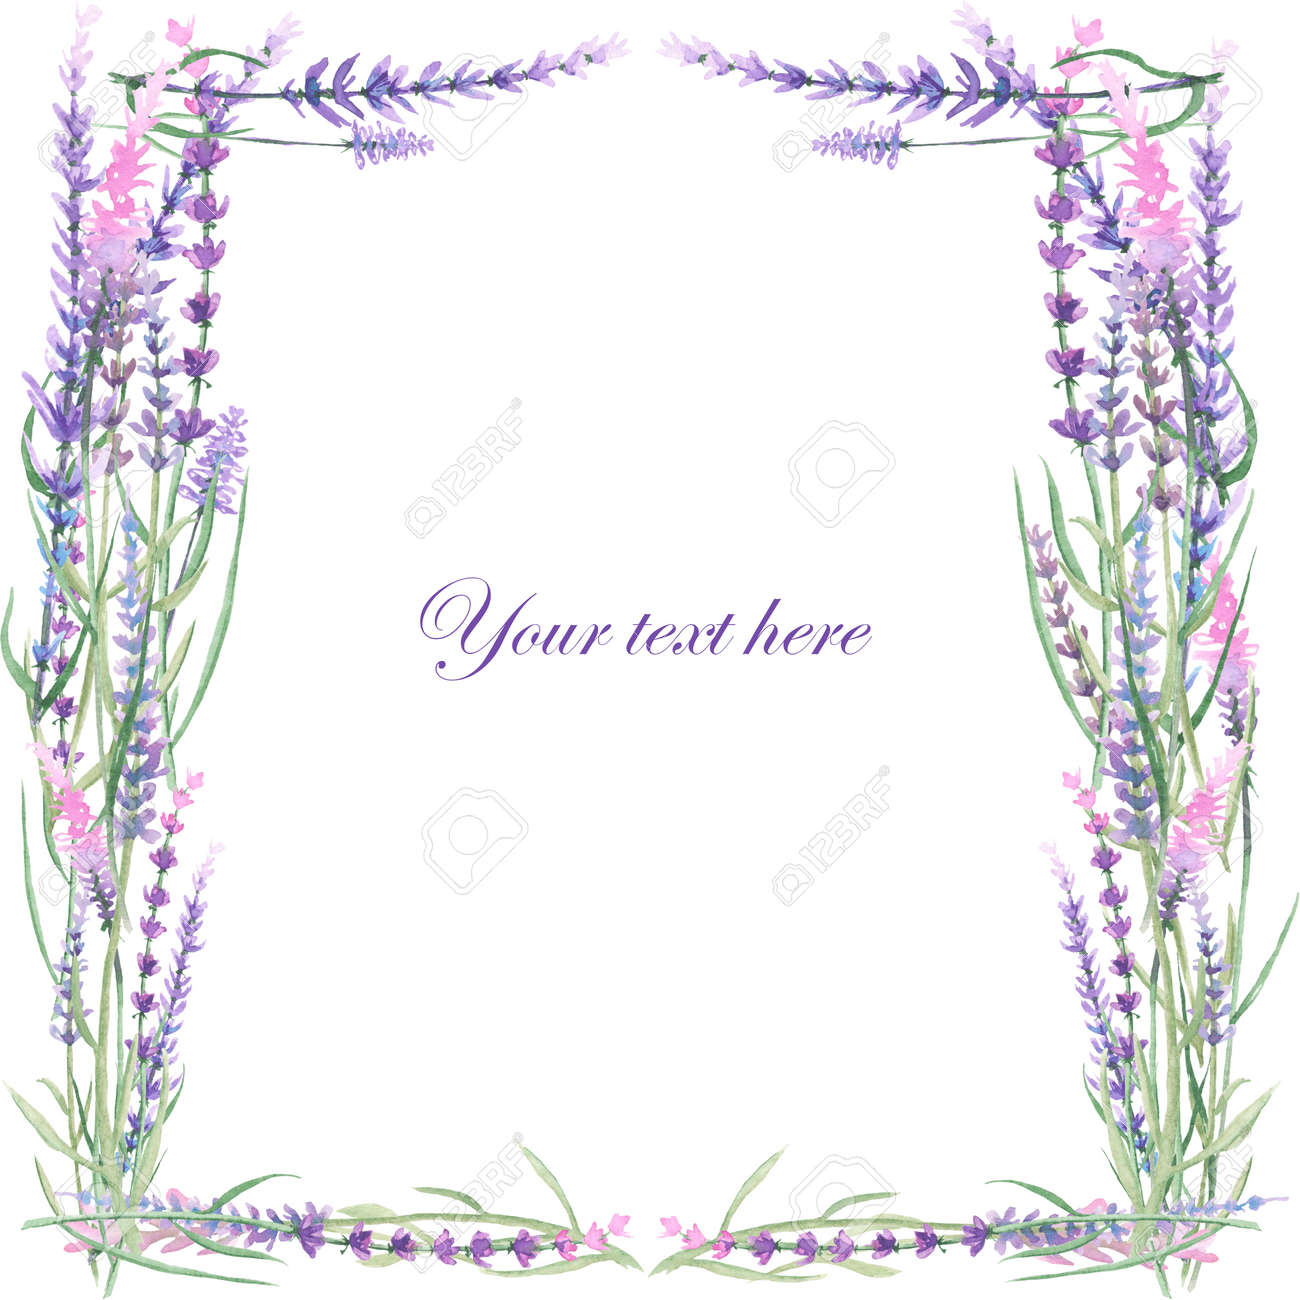 A Card Template Frame Border For A Text With The Watercolor Stock